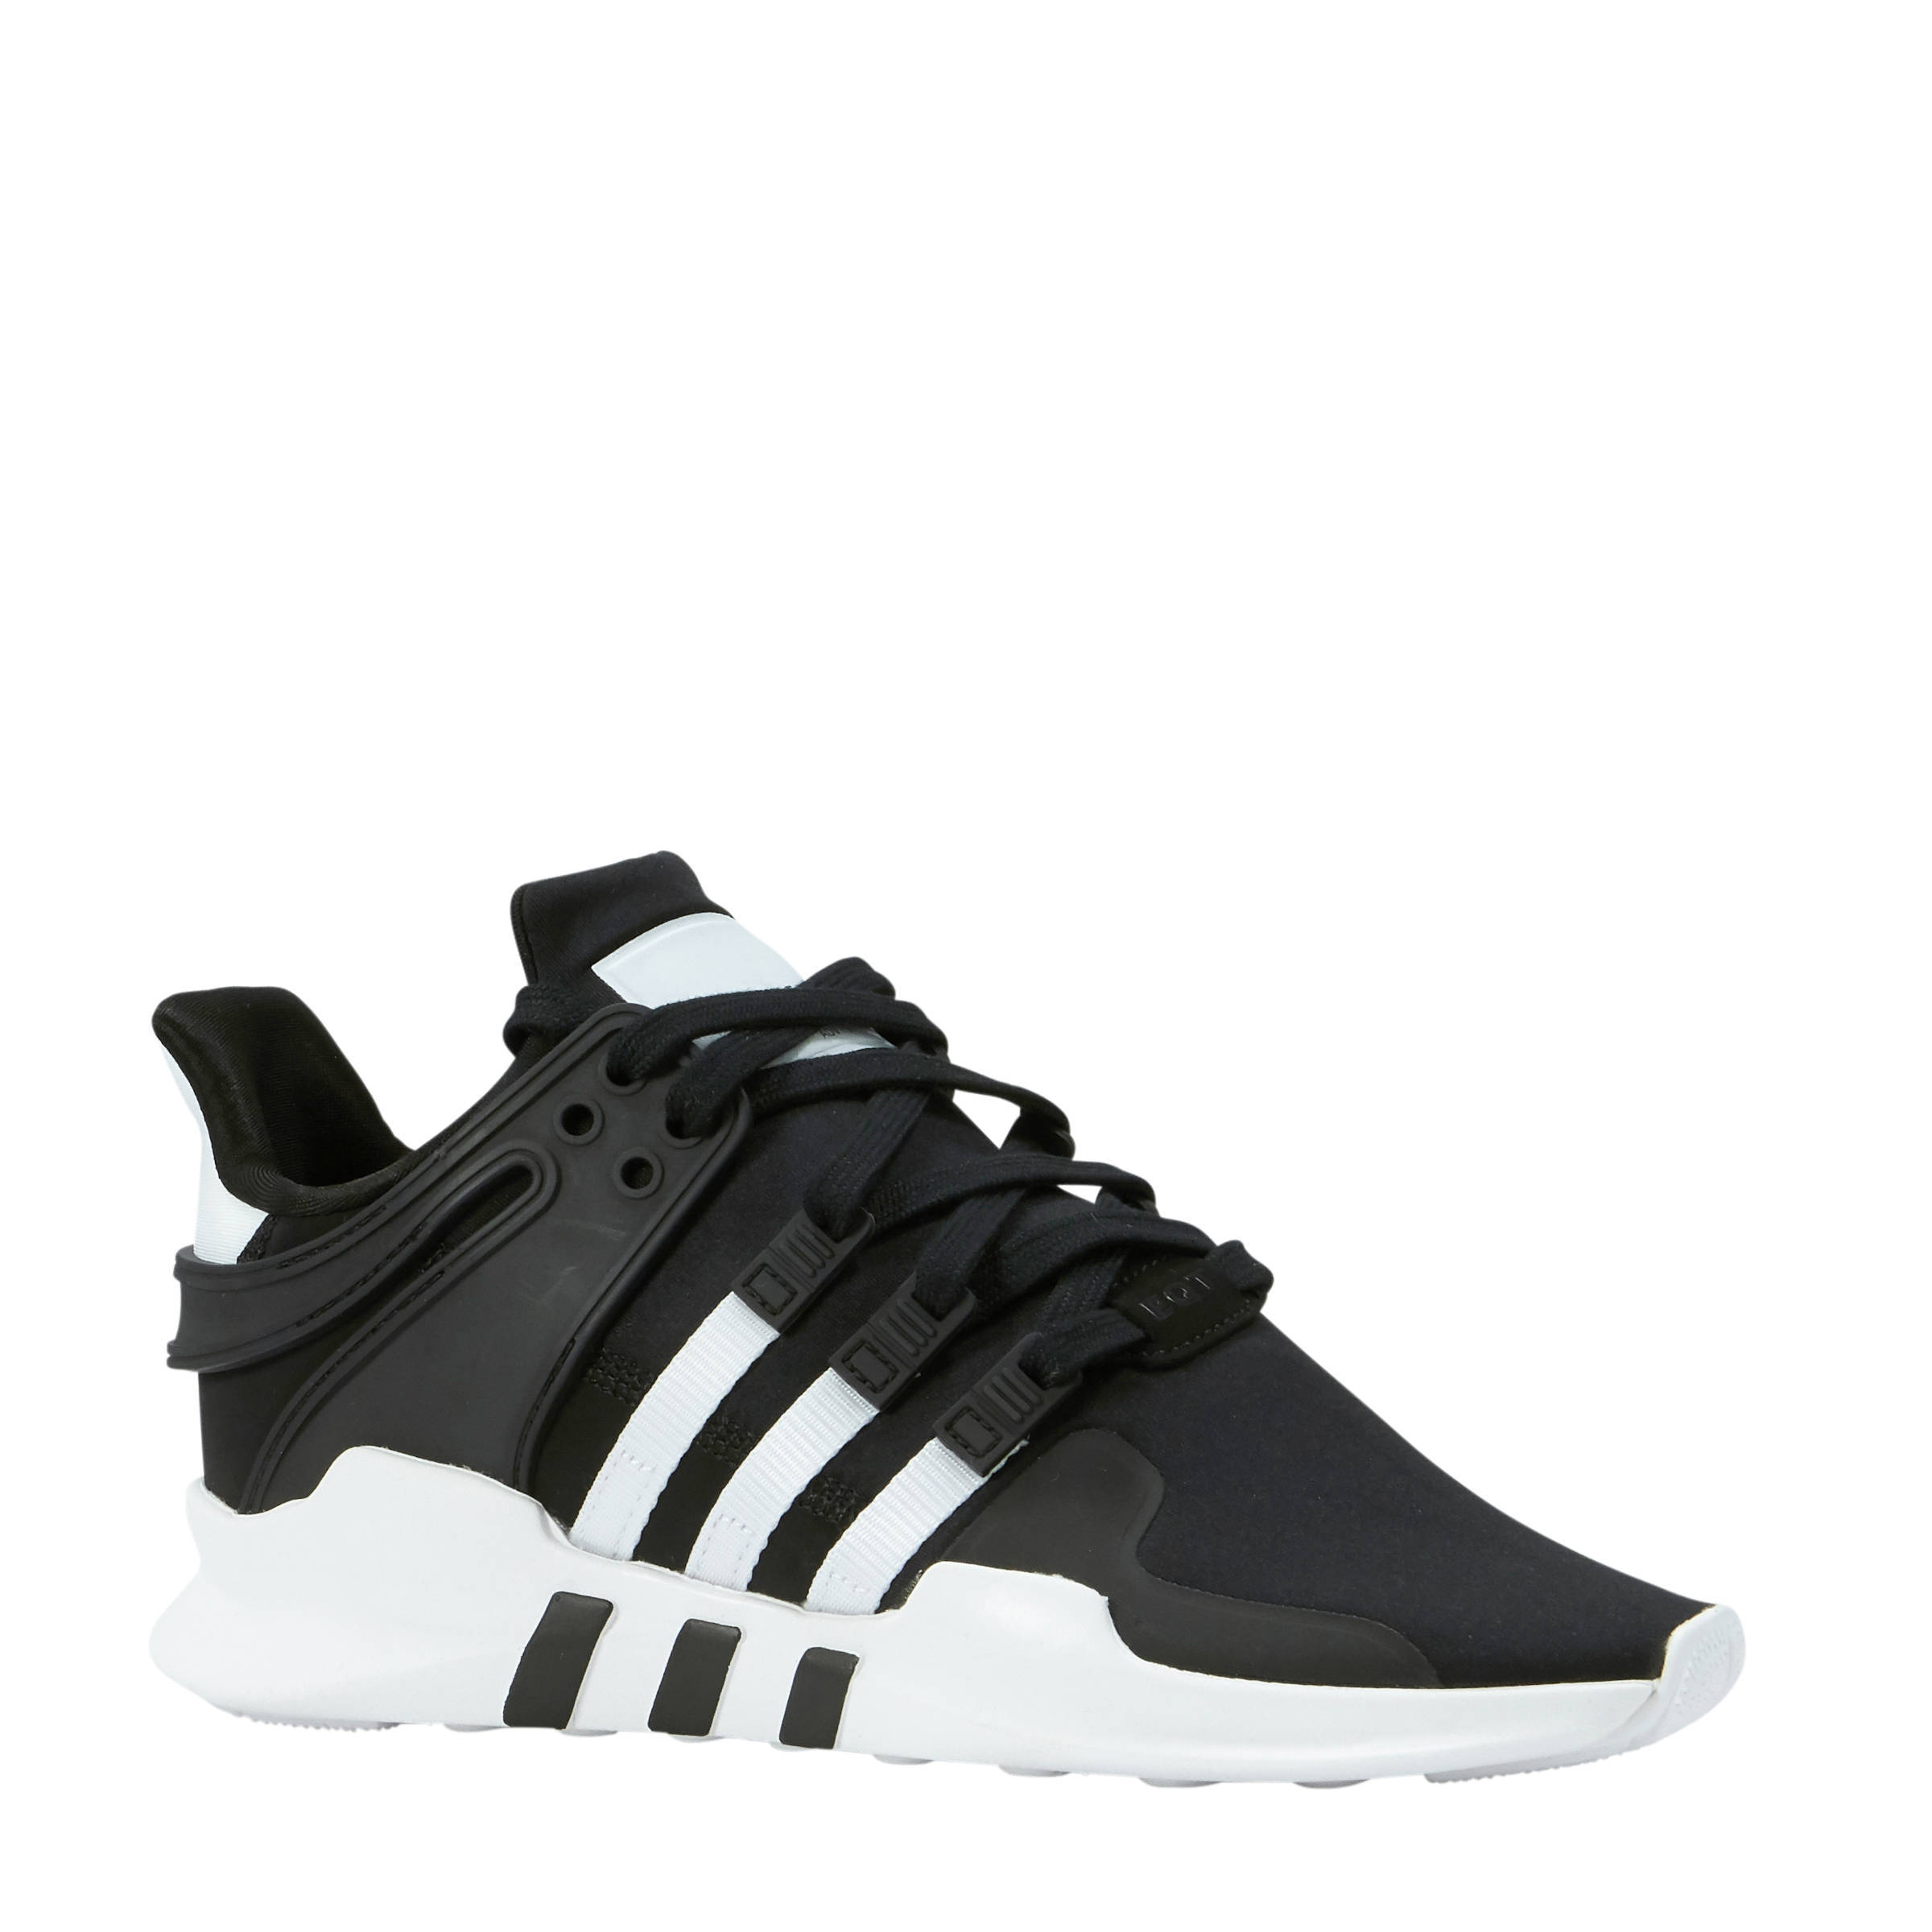 Adidas Originals EquipHerent Support EQT ADV Zwart Wite